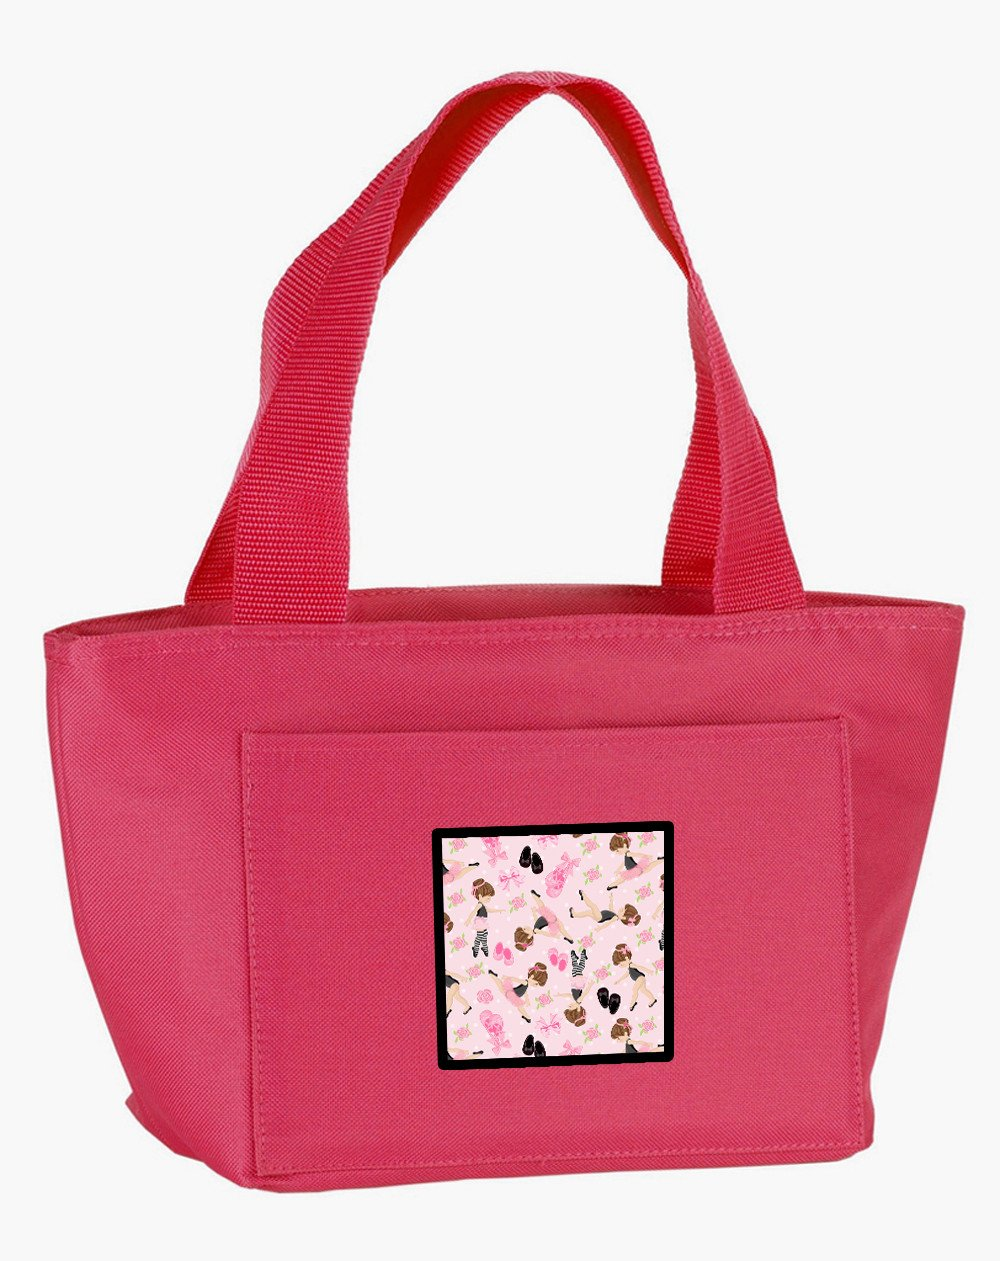 Buy this Ballerinas and Roses Lunch Bag BB5172PK-8808